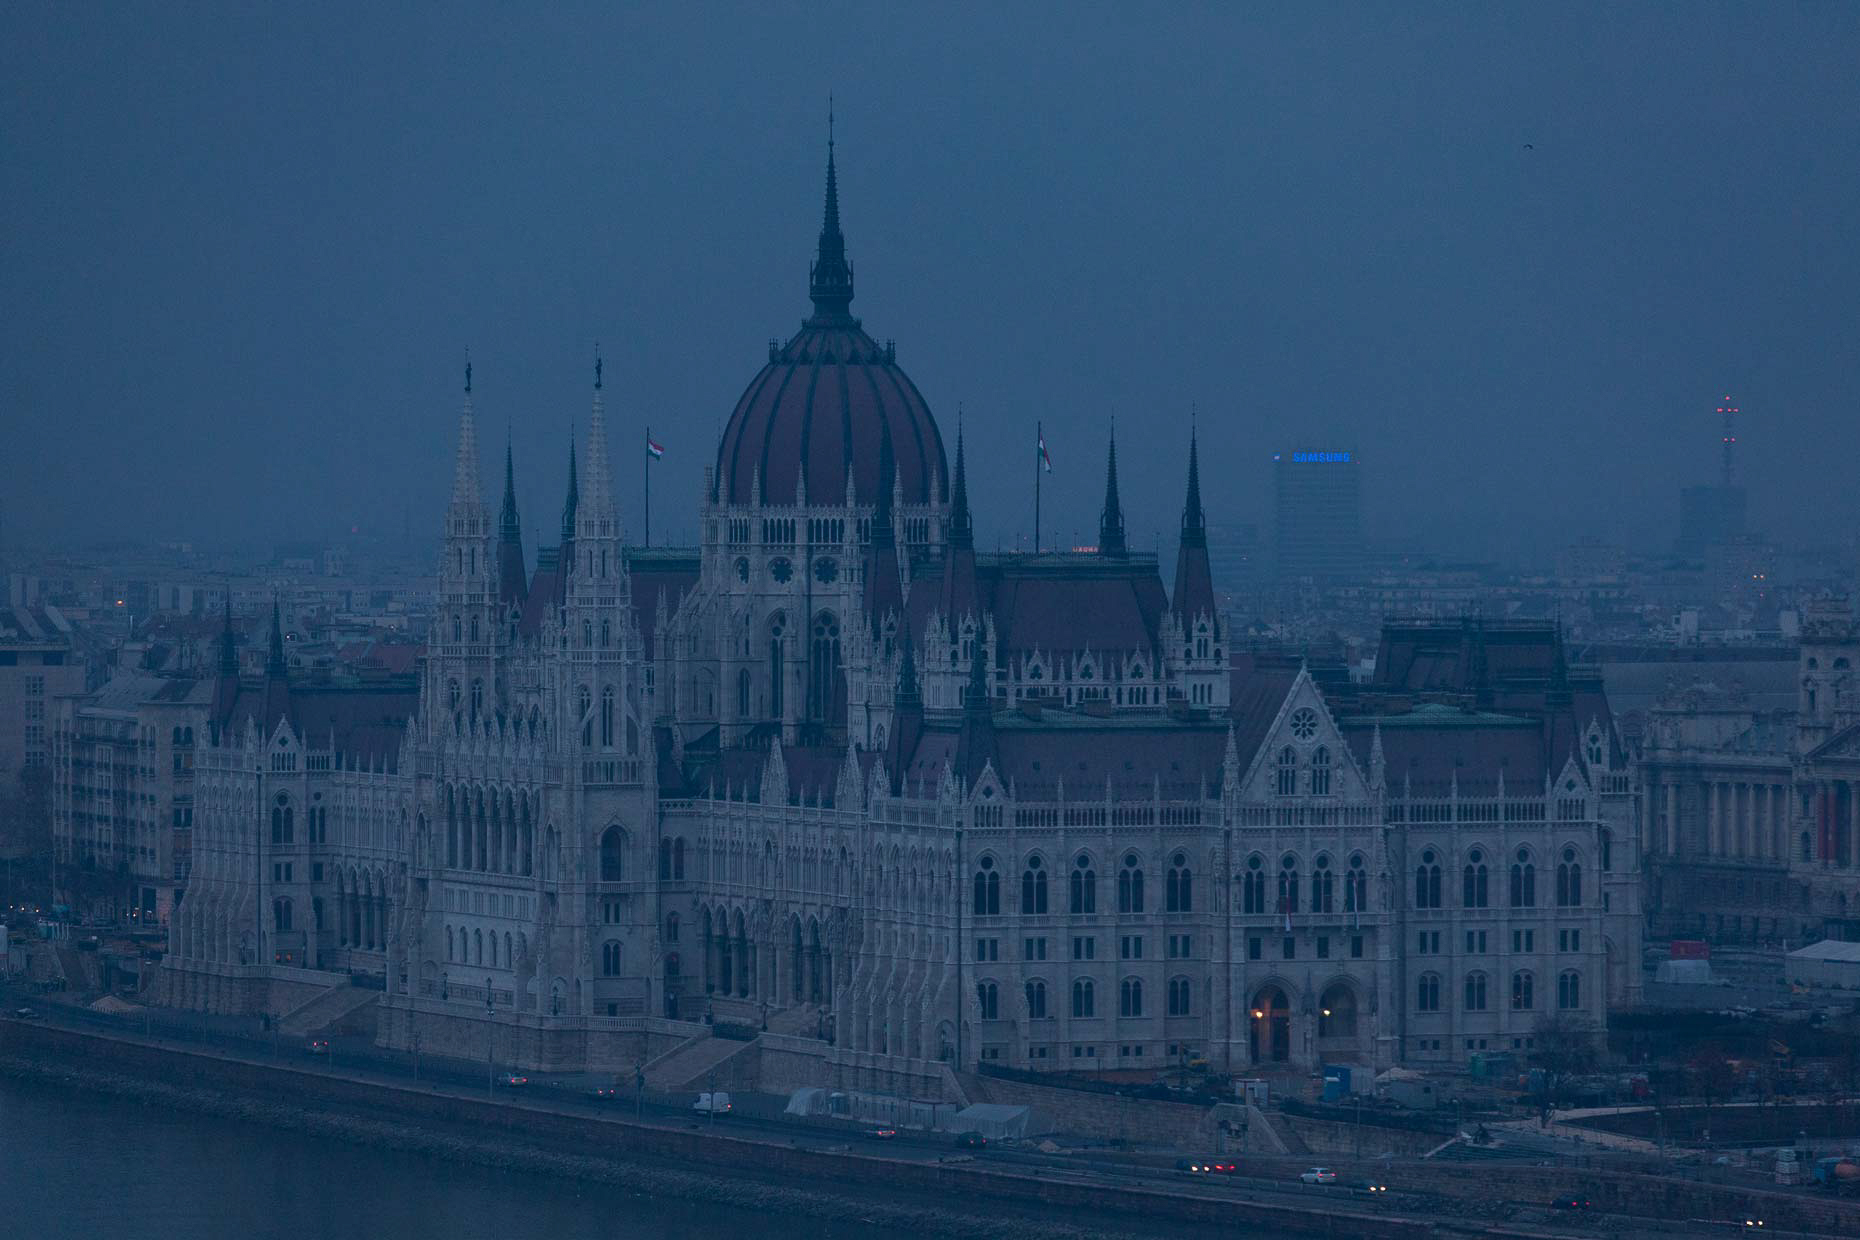 BudapestParliamentatNight